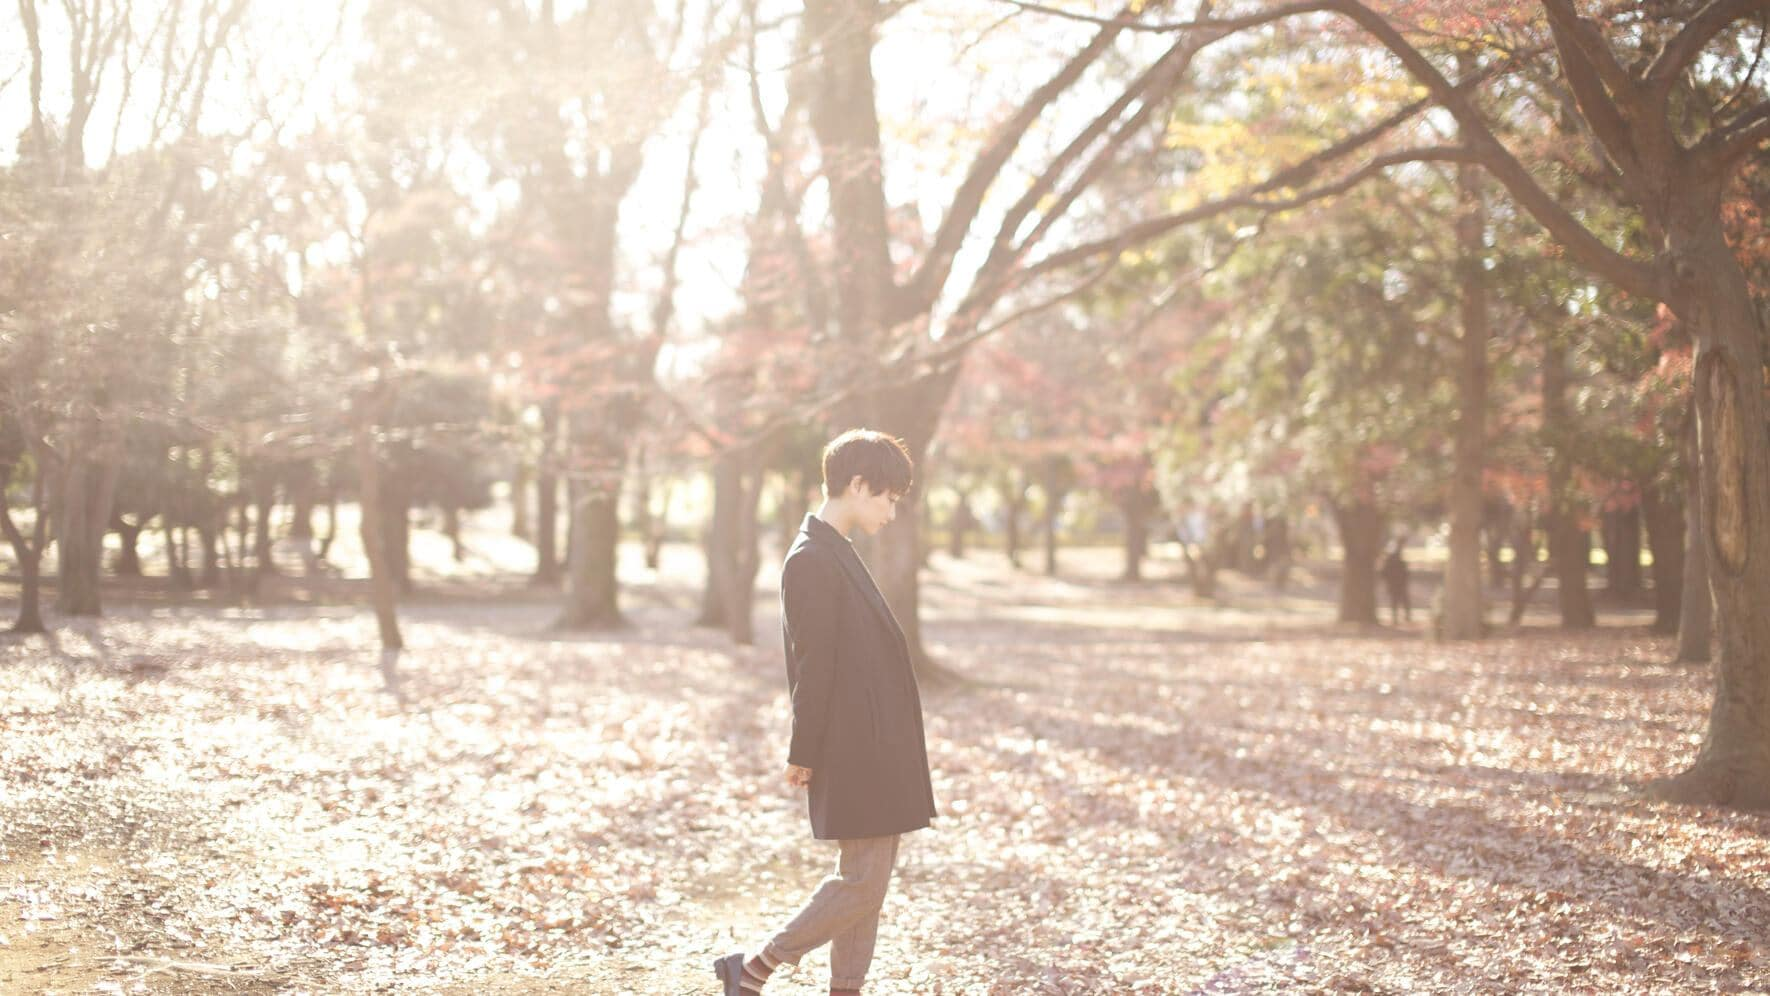 Japanese woman walks in a nature with happiness.